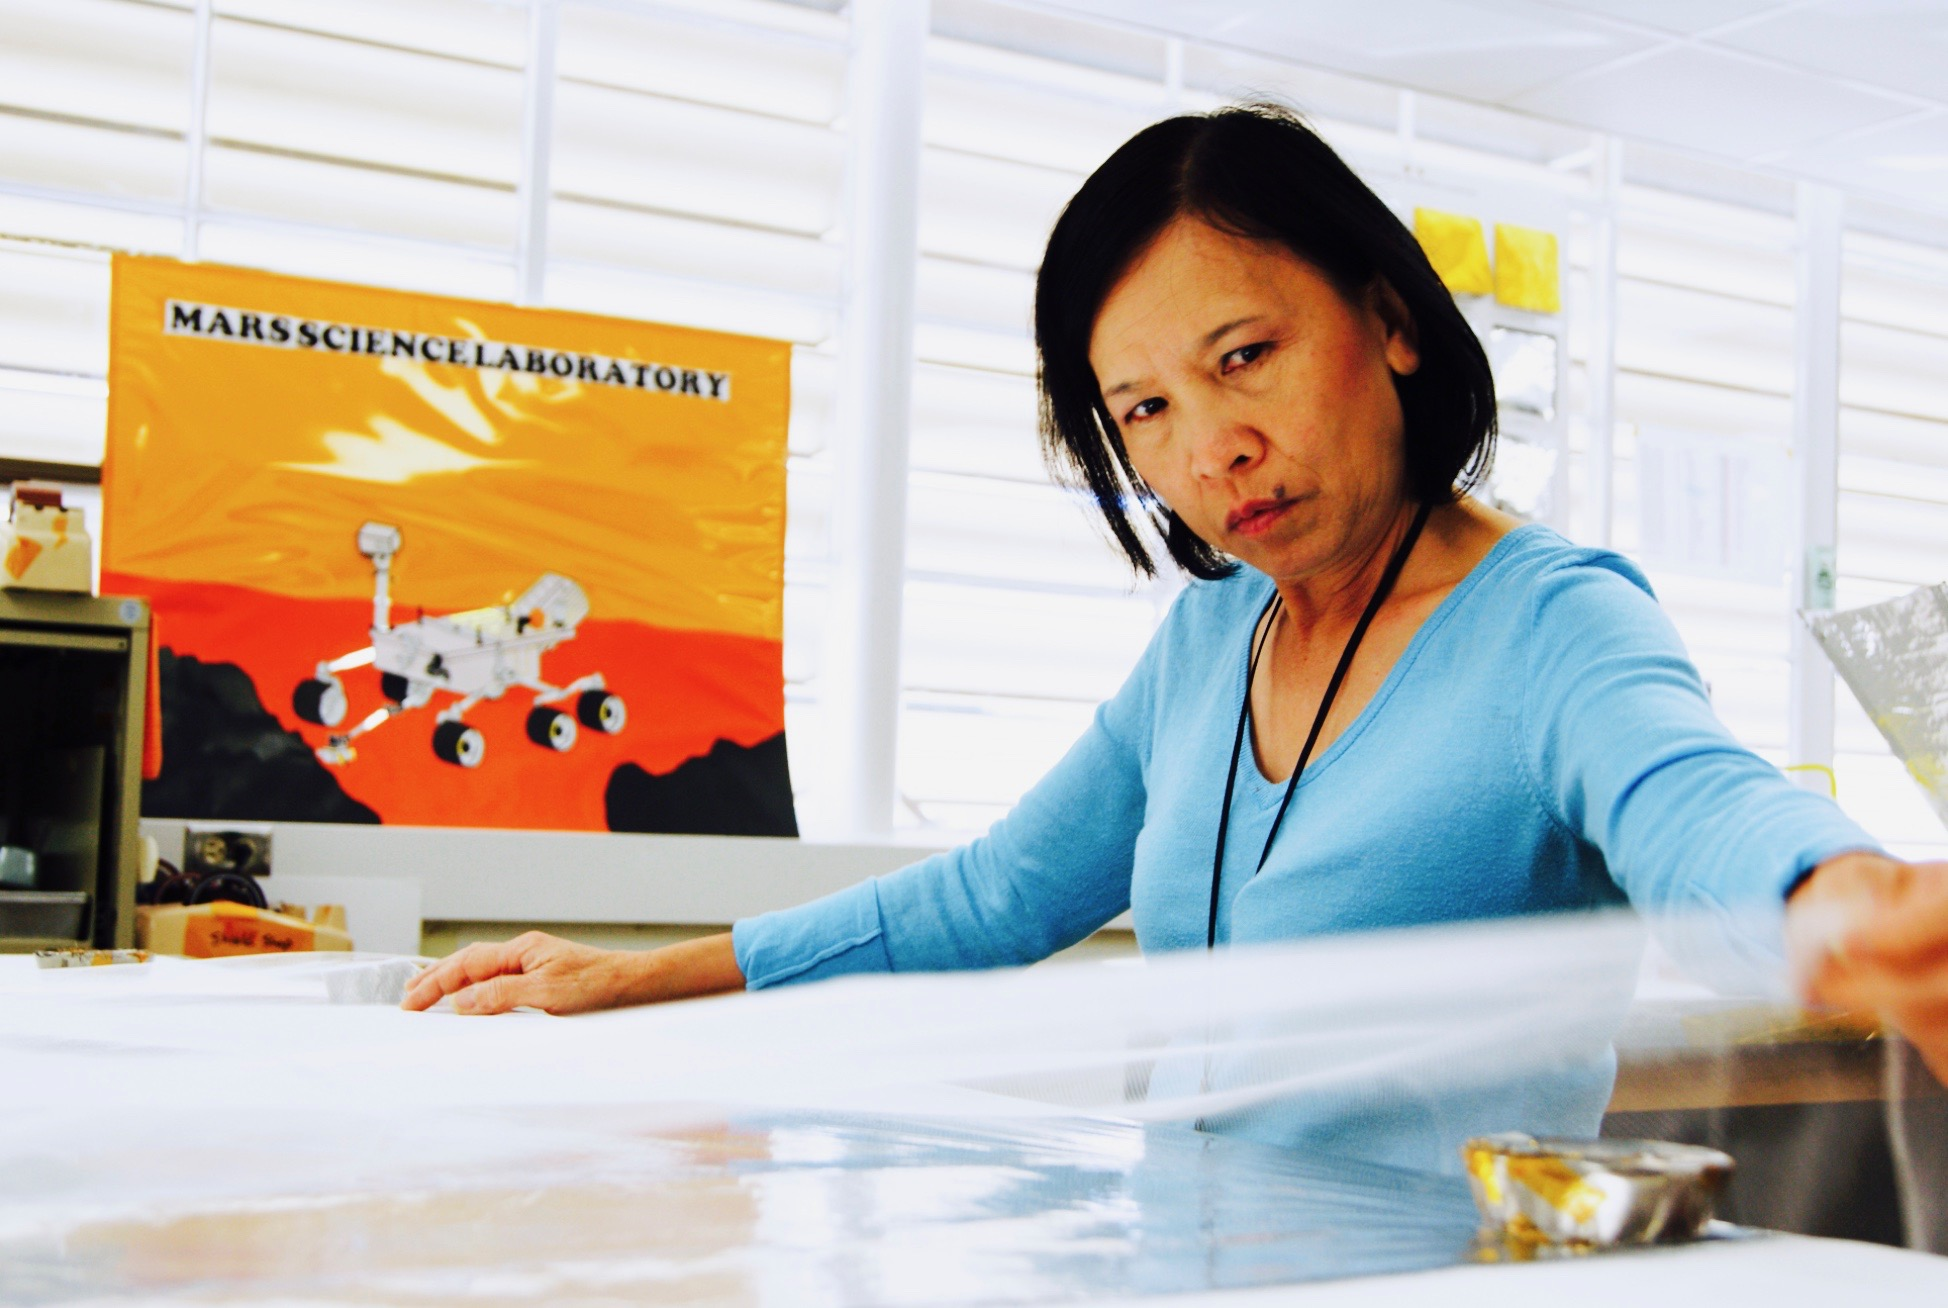 A Vietnamese American 'Spacecraft Dressmaker' works at JPL for 16 years